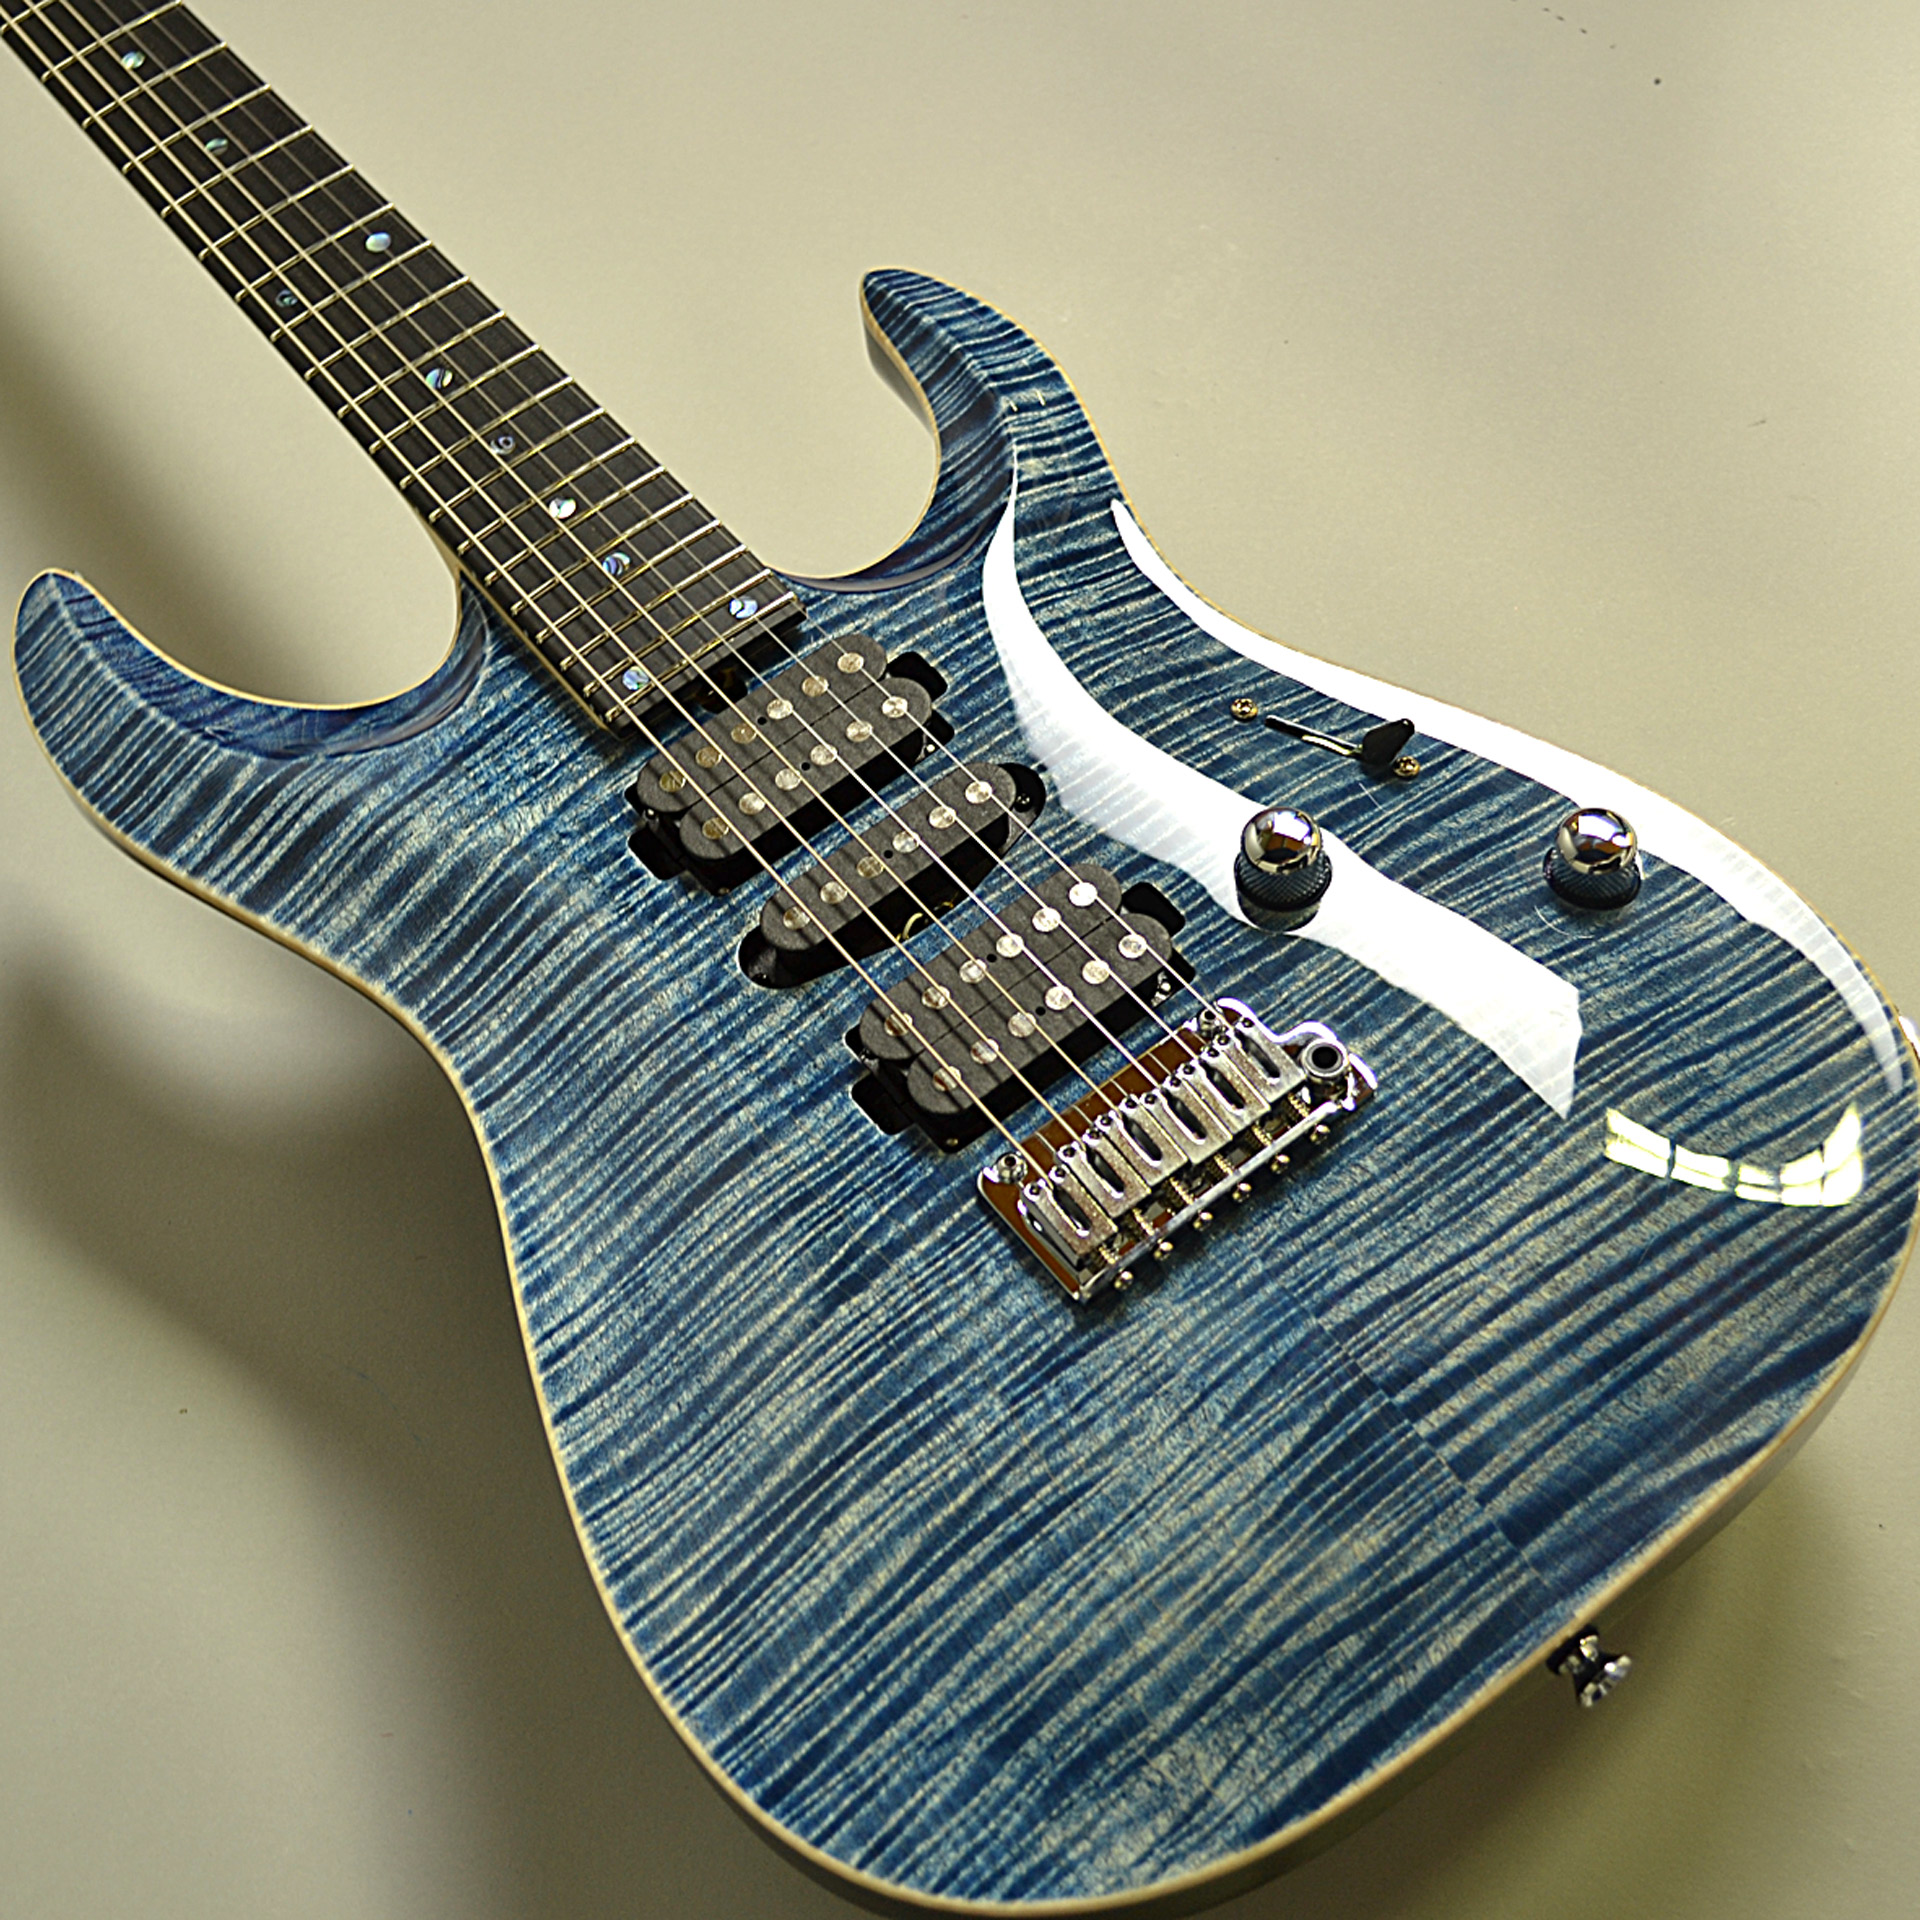 DST-Pro24 Carvedtop 5A FlameMapleのボディバック-アップ画像